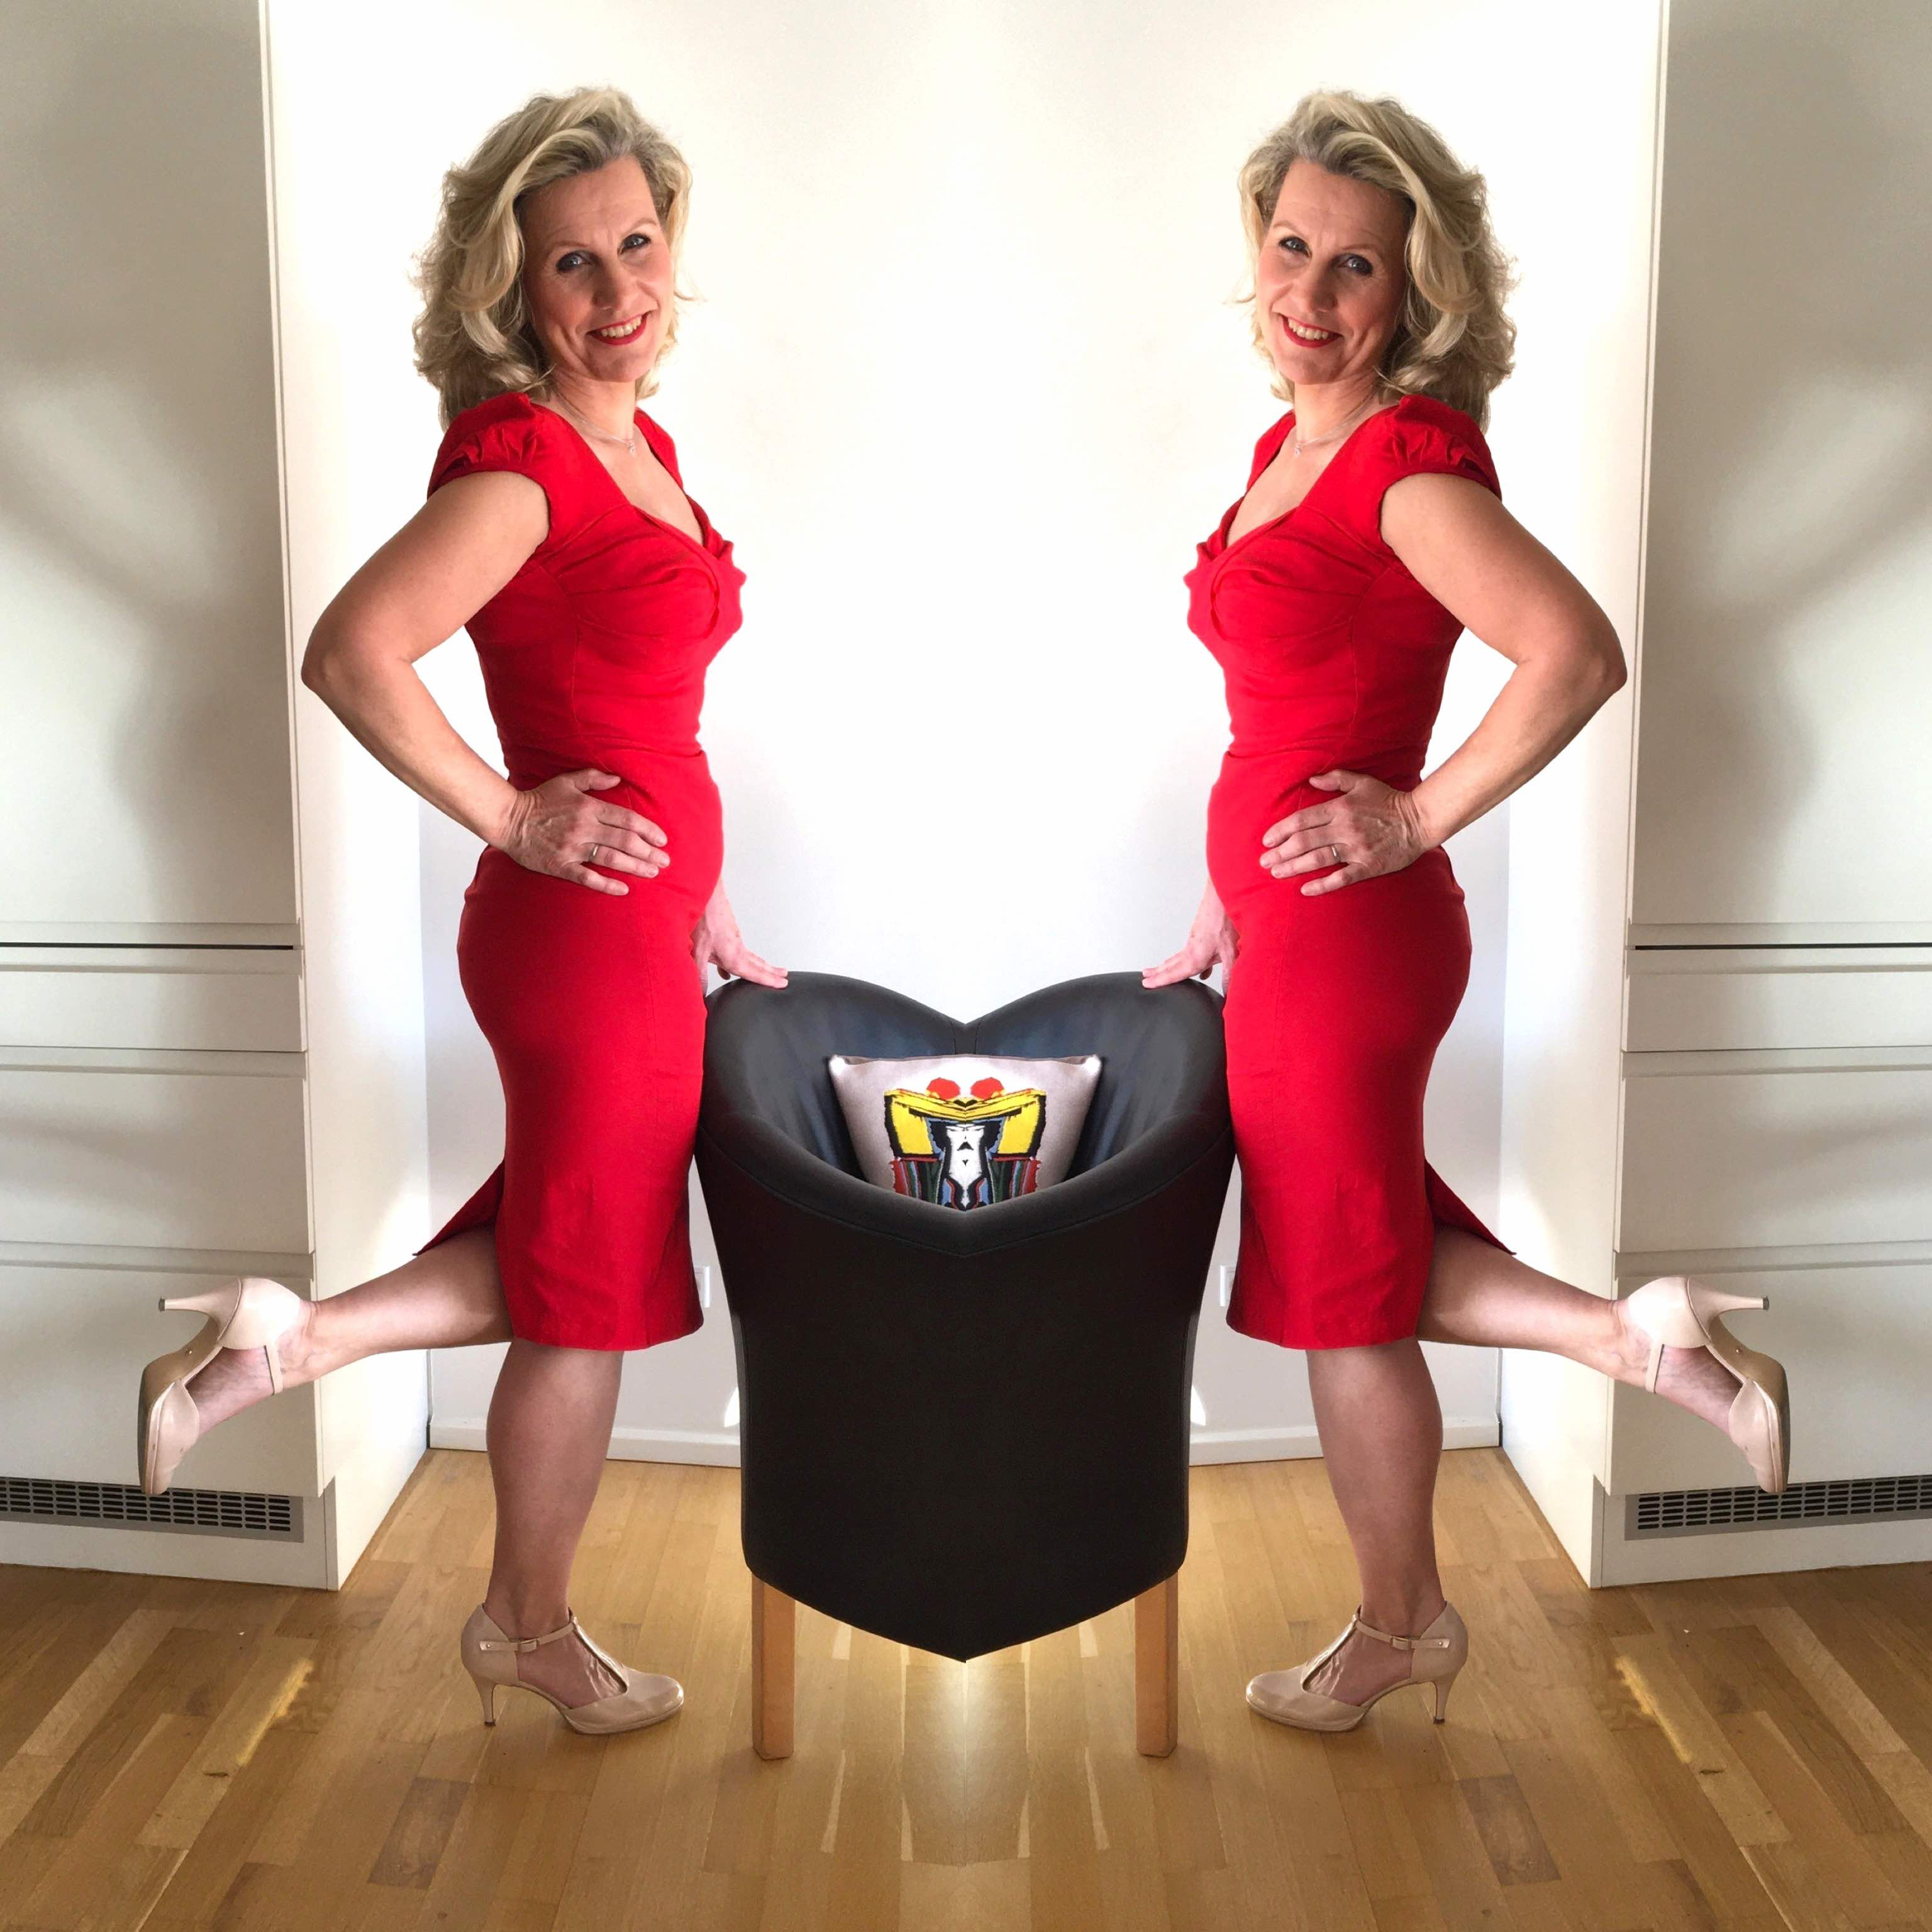 Stop staring trillion dollars red tailored pencil dress